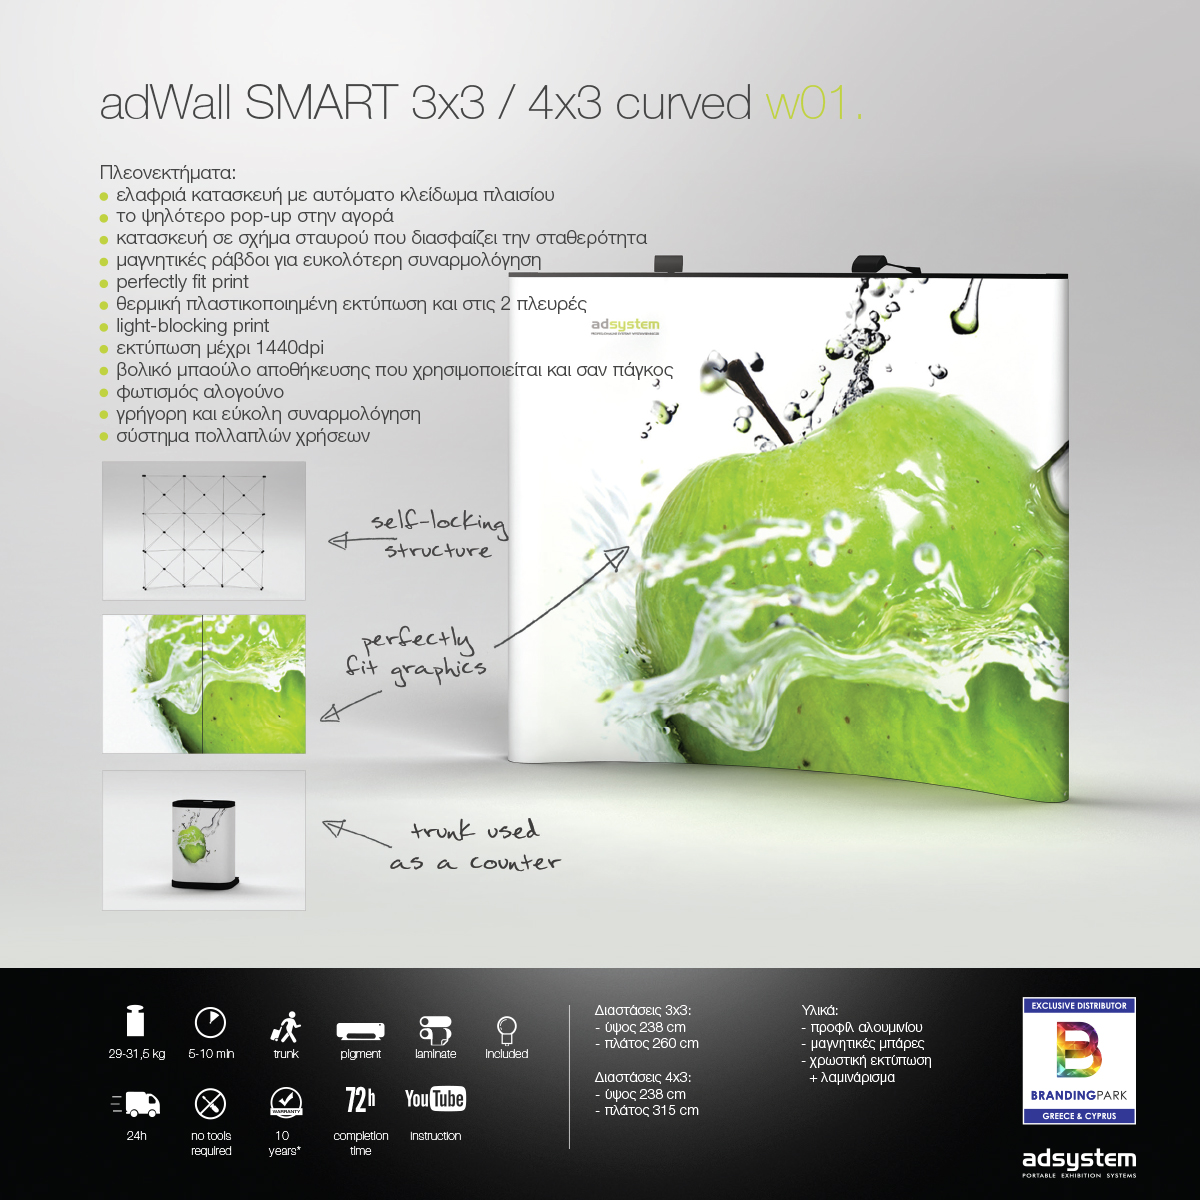 Spider pop up display adWall SMART w01